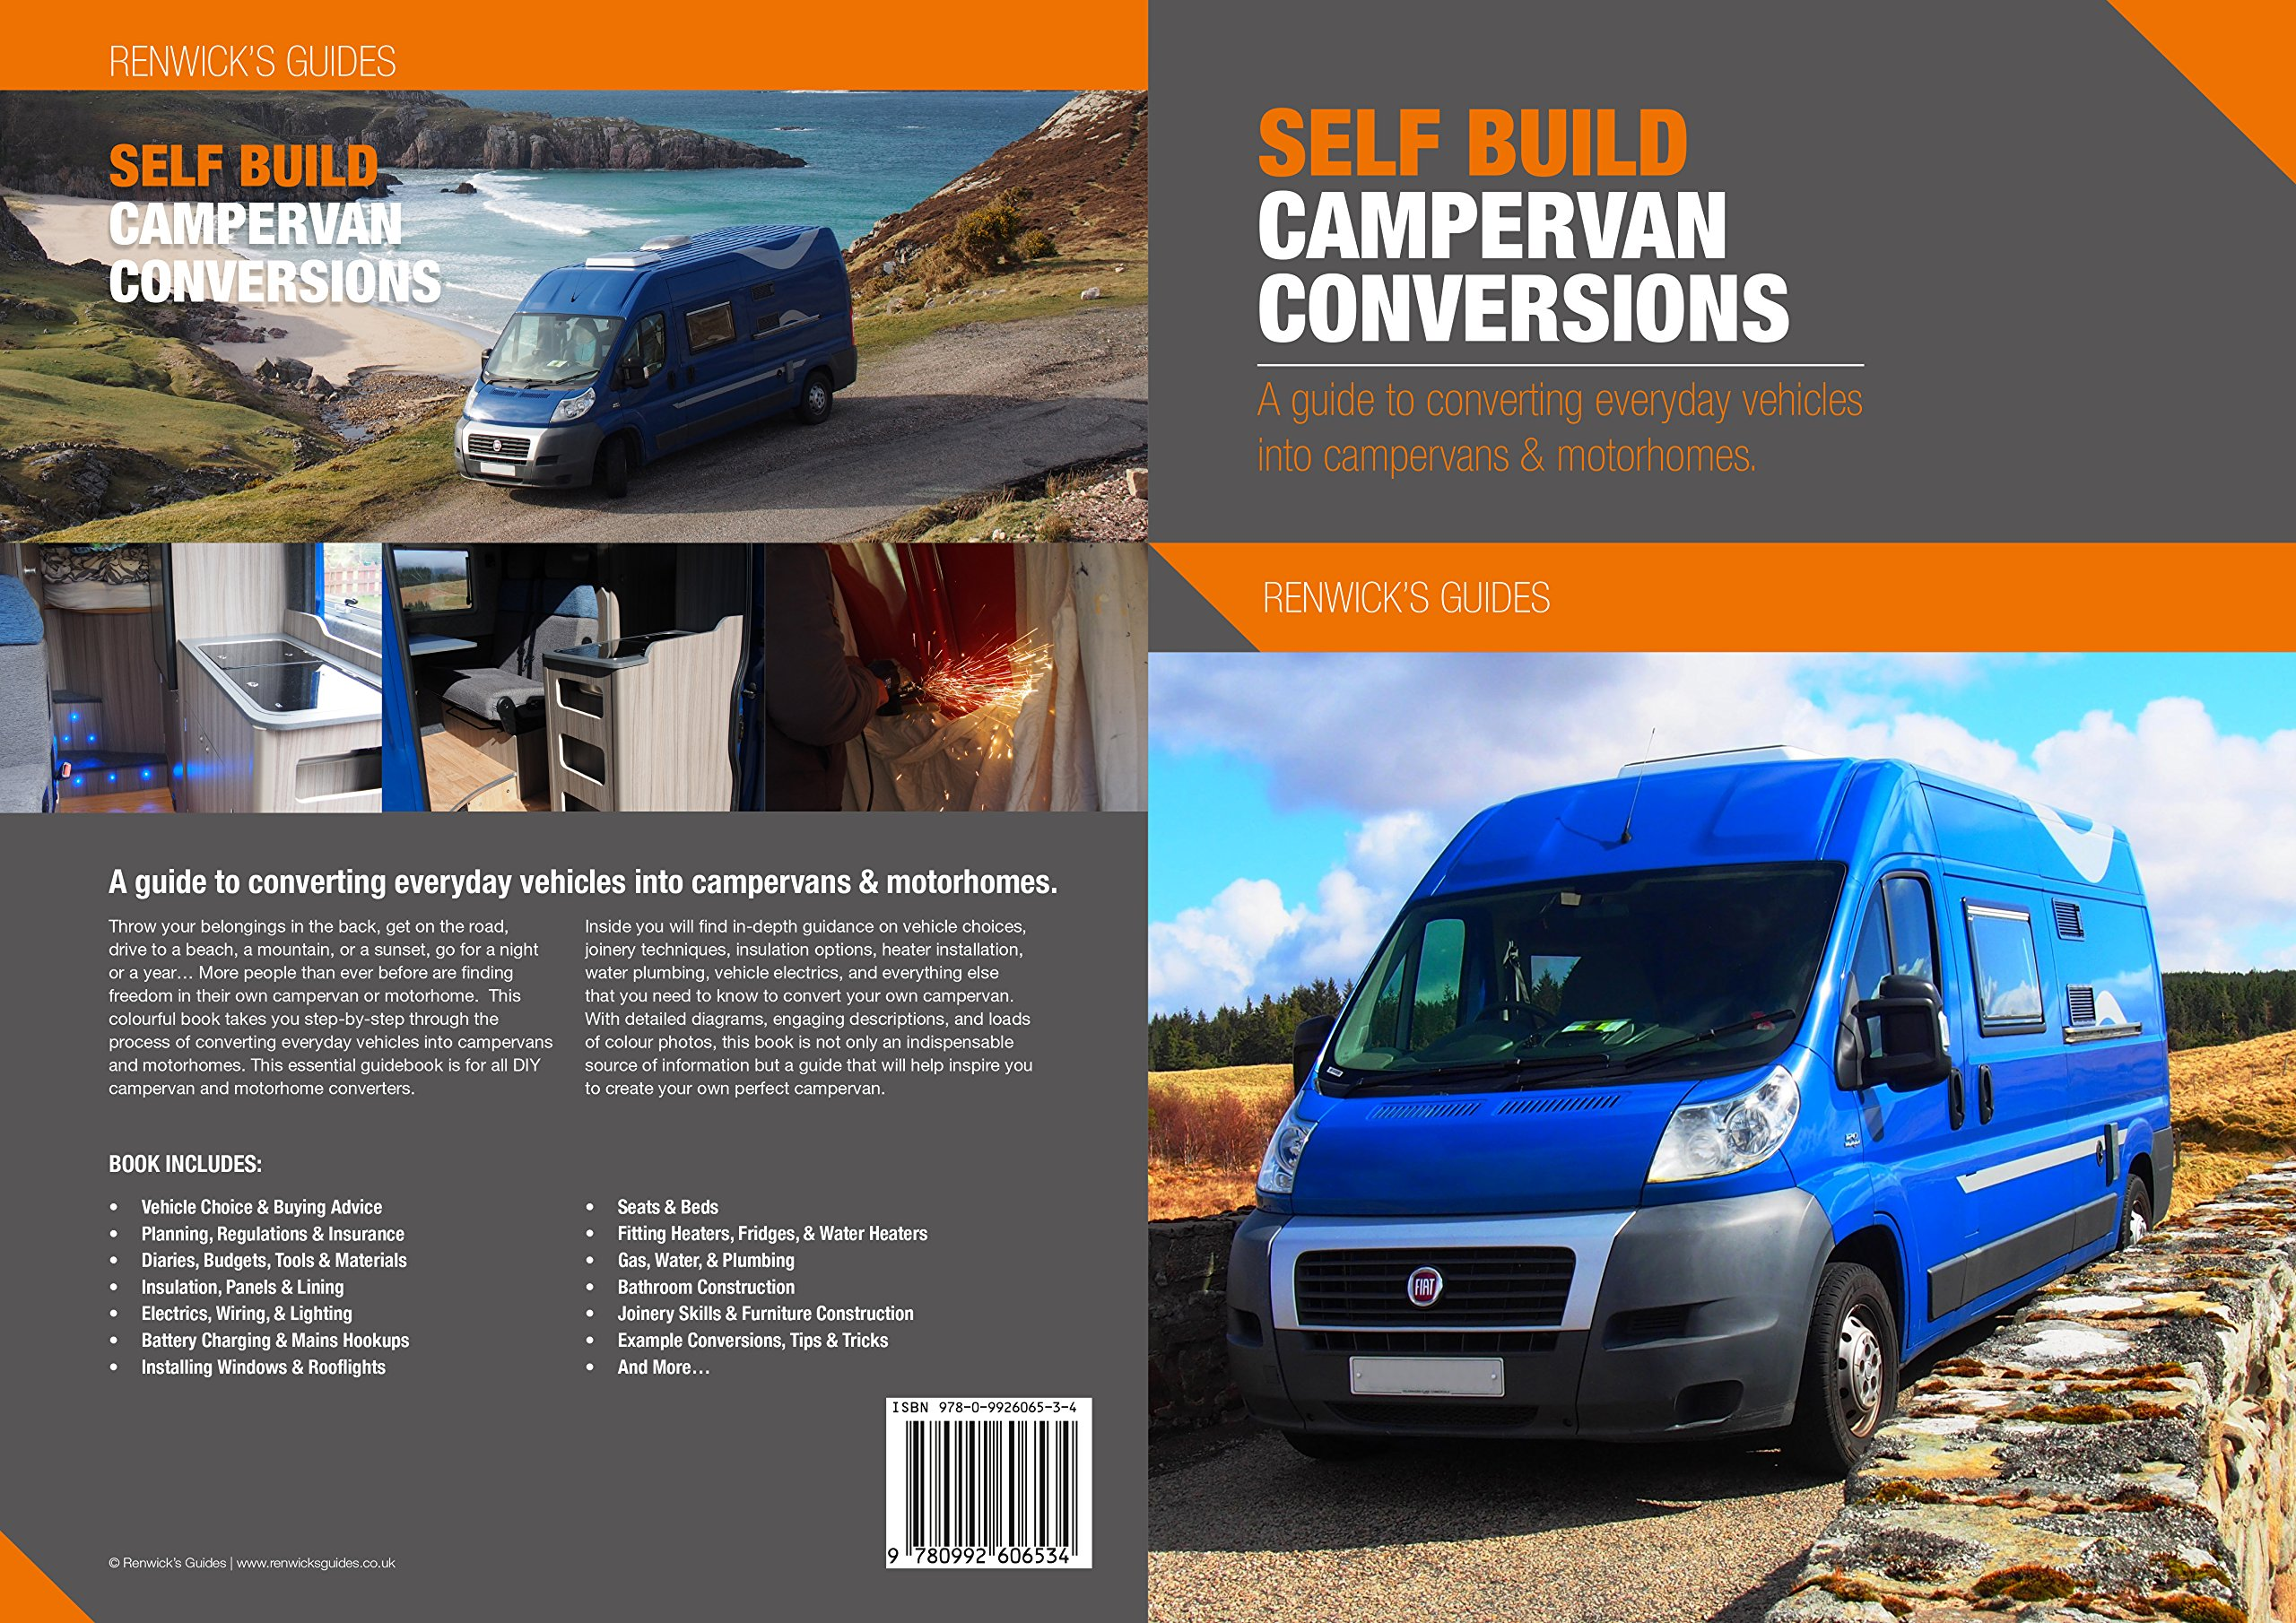 Camper Conversion Guide Elantra Electrical Troubleshootin G Manual Wiring Daigrams 97 Gls Best Diy Promaster Campervan Array Self Build Conversions A To Converting Everyday Rh Amazon